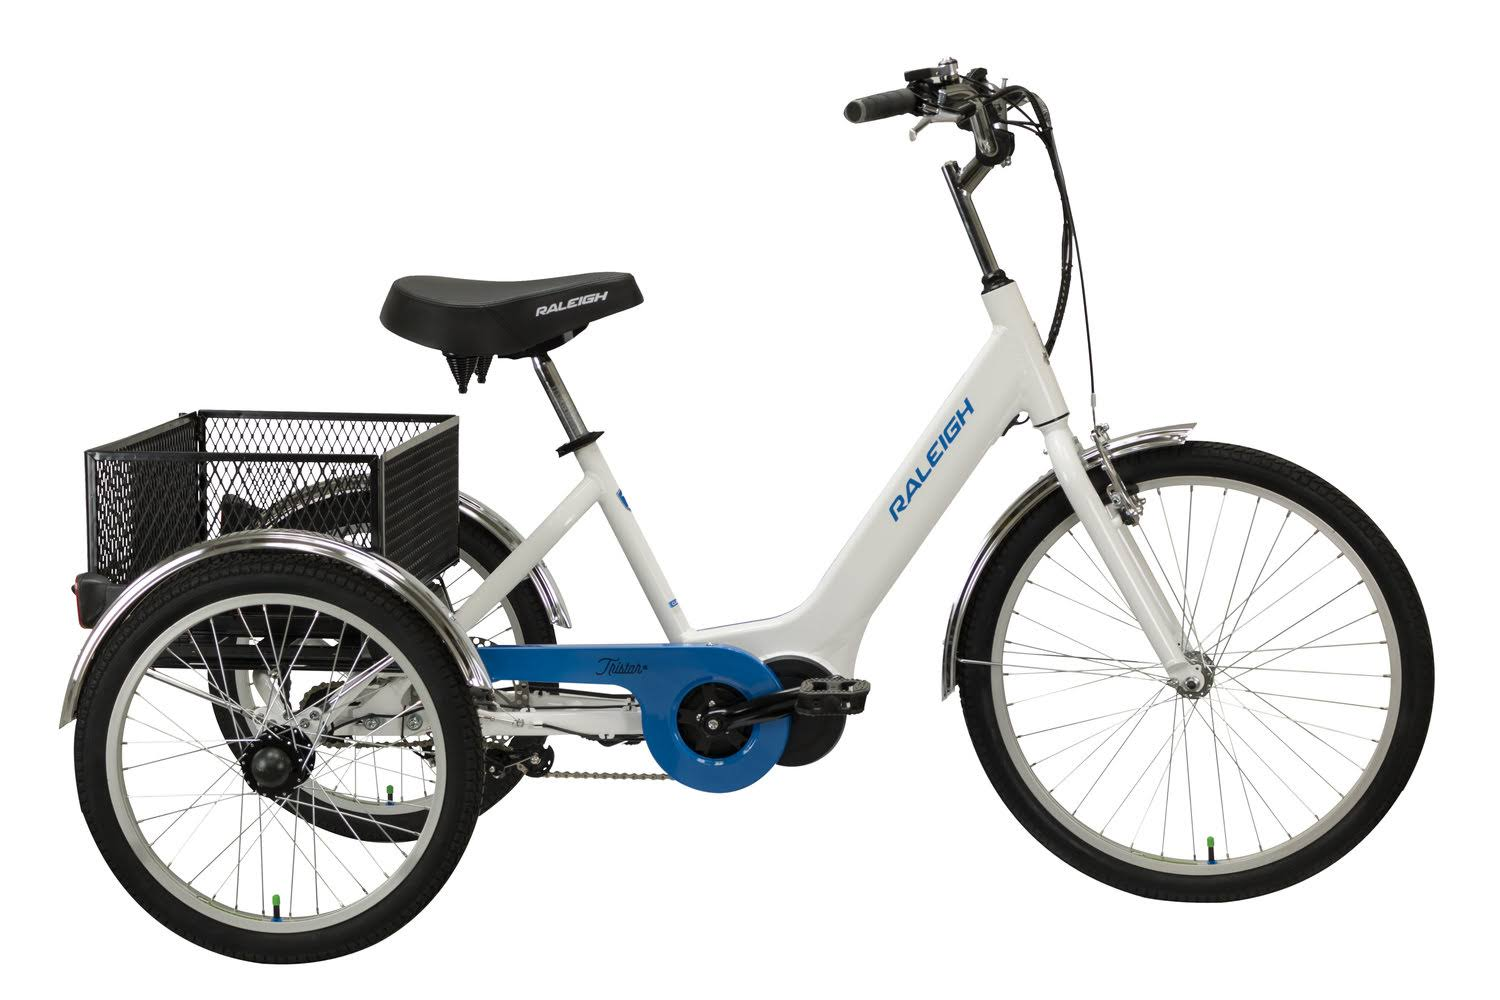 Raleigh Electric Tristar IE E-Trike